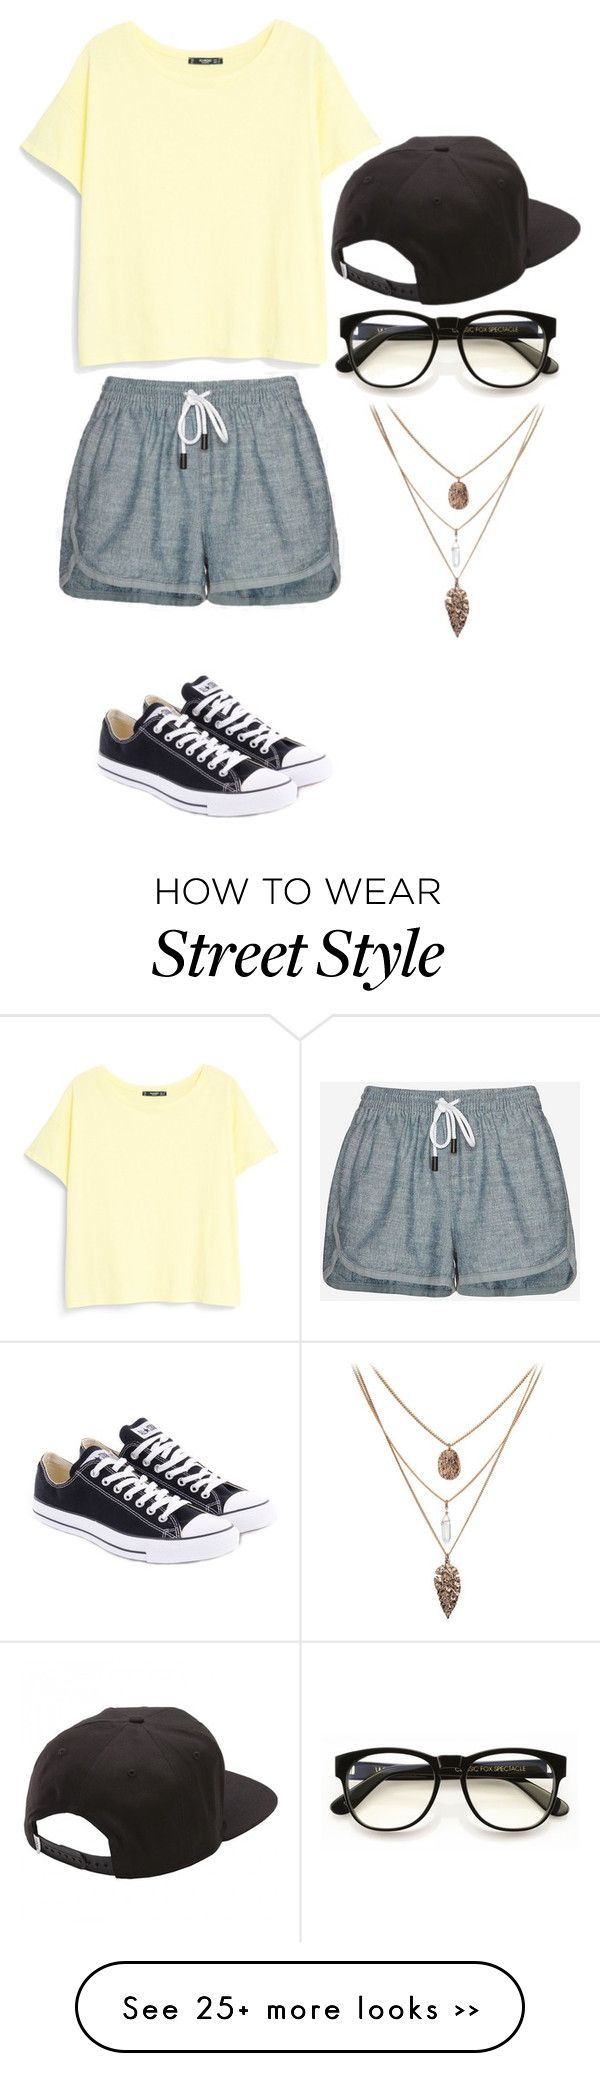 """relaxed street style"" by jillianelizabeth13 on Polyvore"